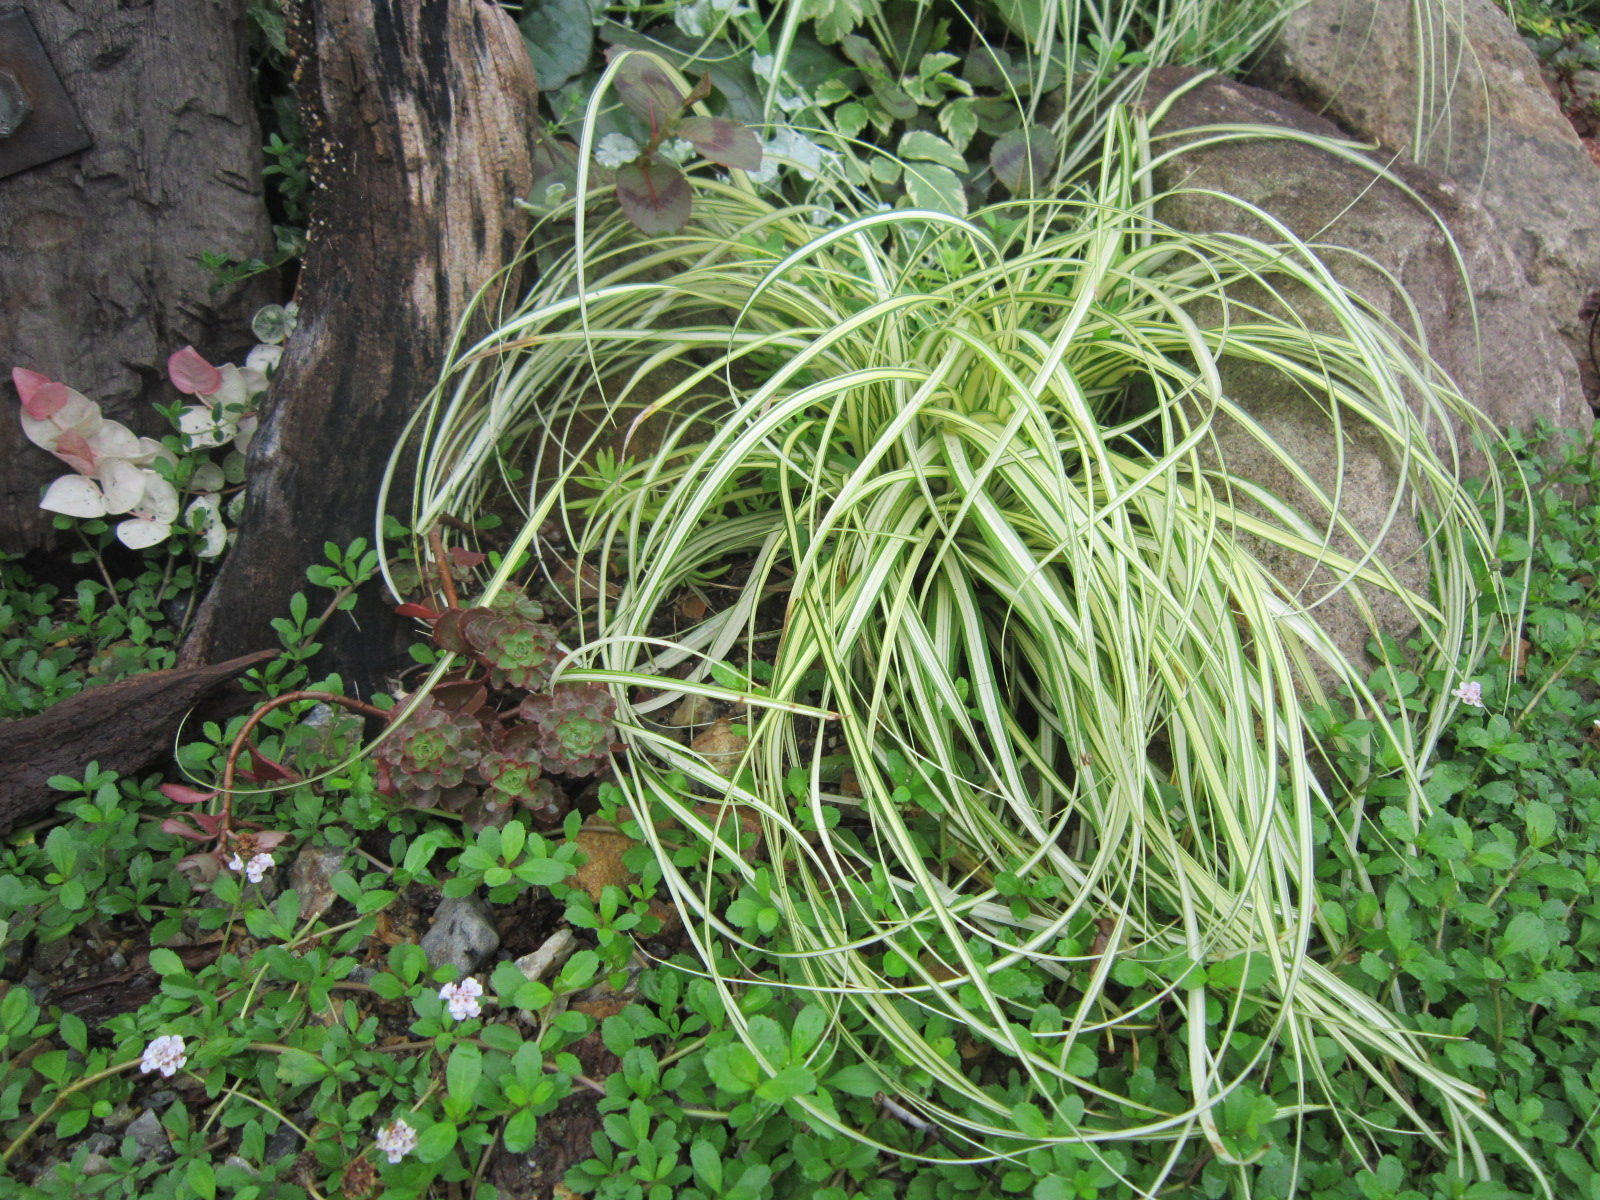 ベアグラス学 名 : Carex oshimensis ' Evergold'